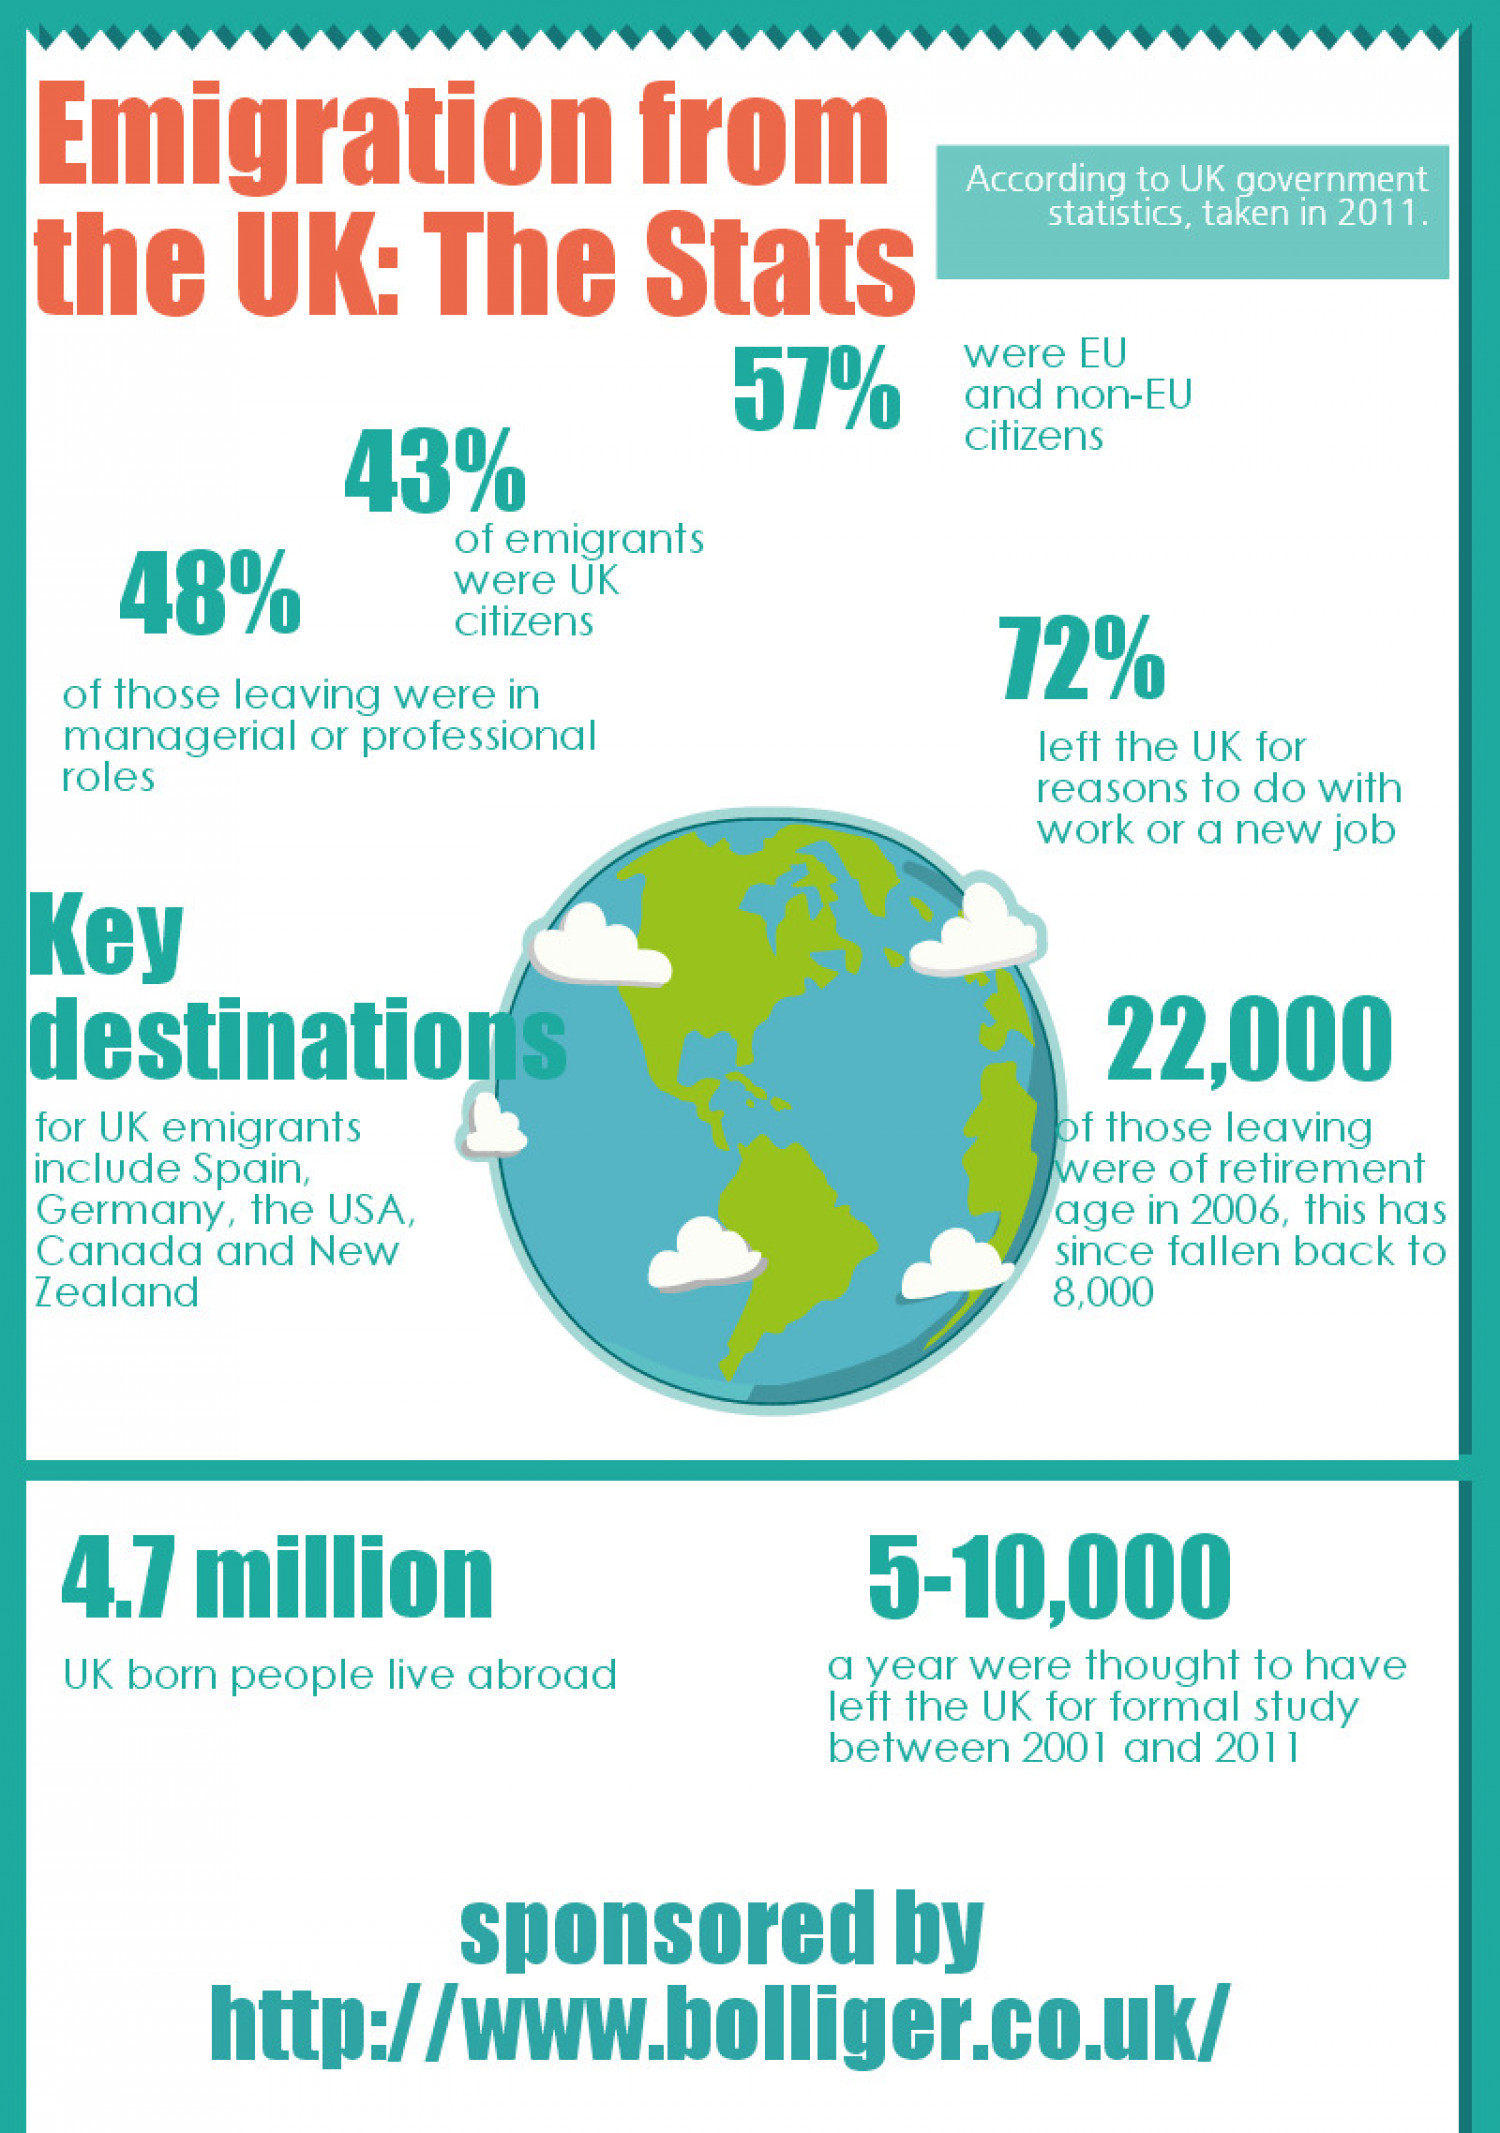 Emigration from the UK: The Stats  Infographic